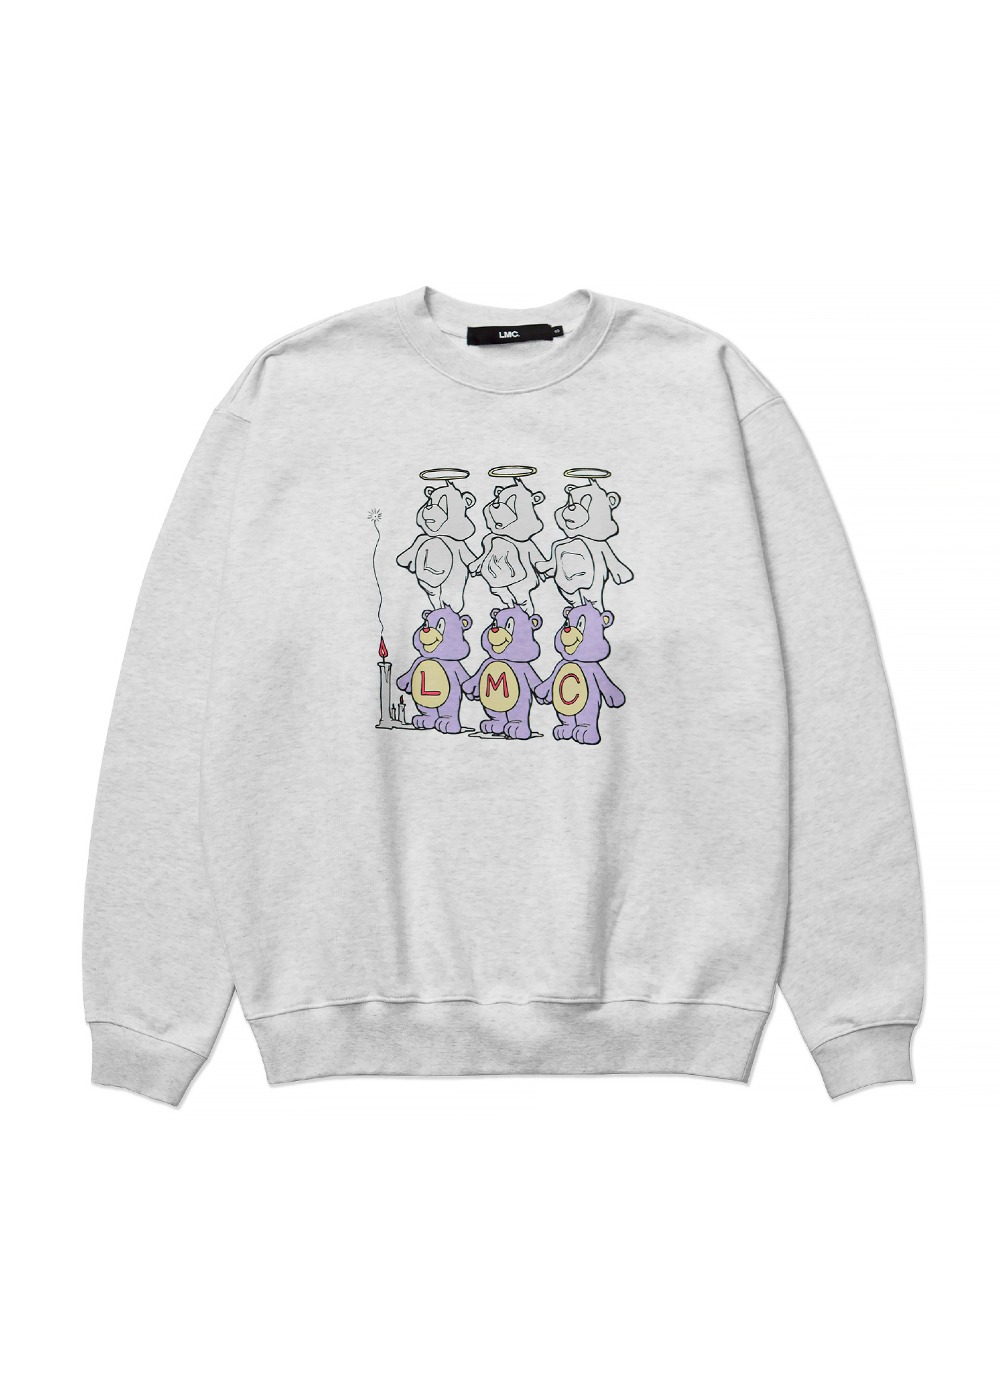 LMC THREE BEARS SWEATSHIRT lt. heather gray